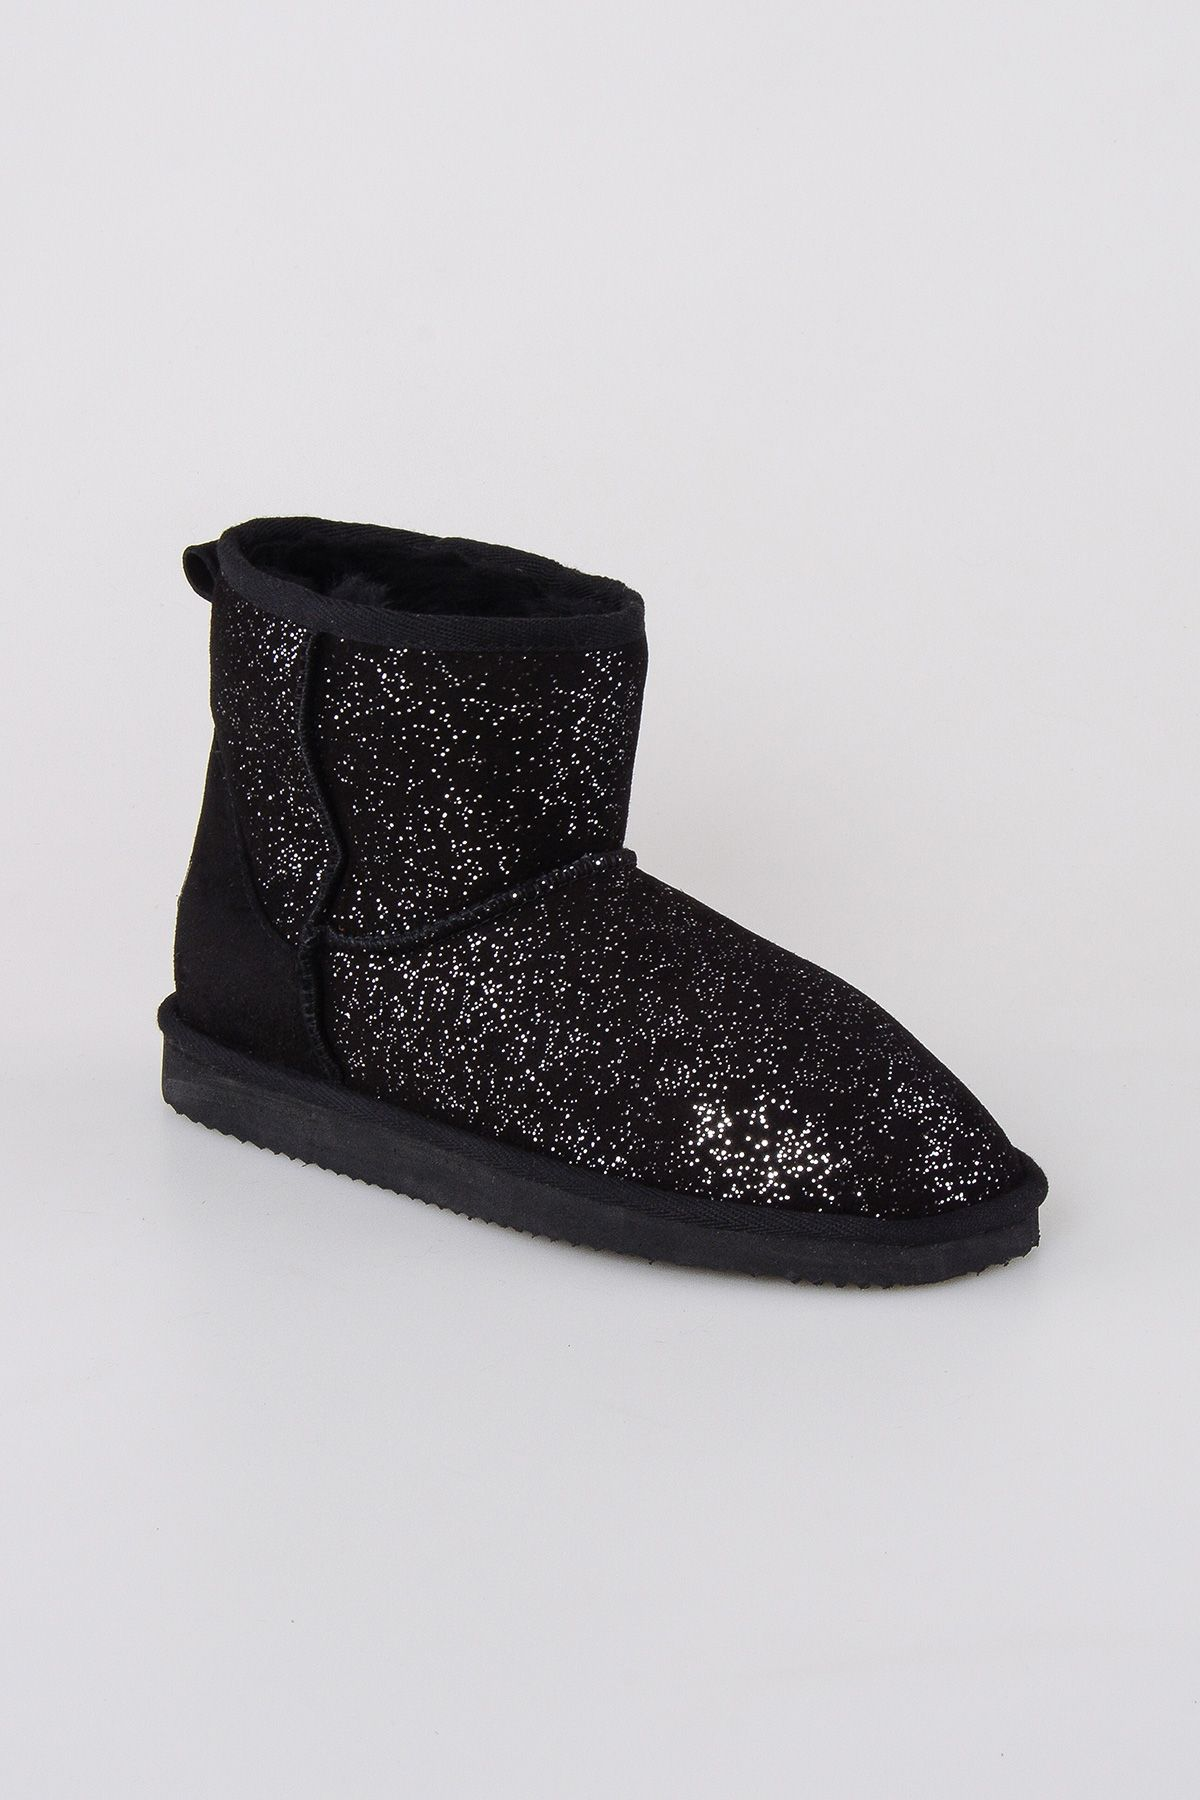 Pegia Short Women Boots From Genuine Sheepskin Fur With Galaxy Sequins 191029 Black